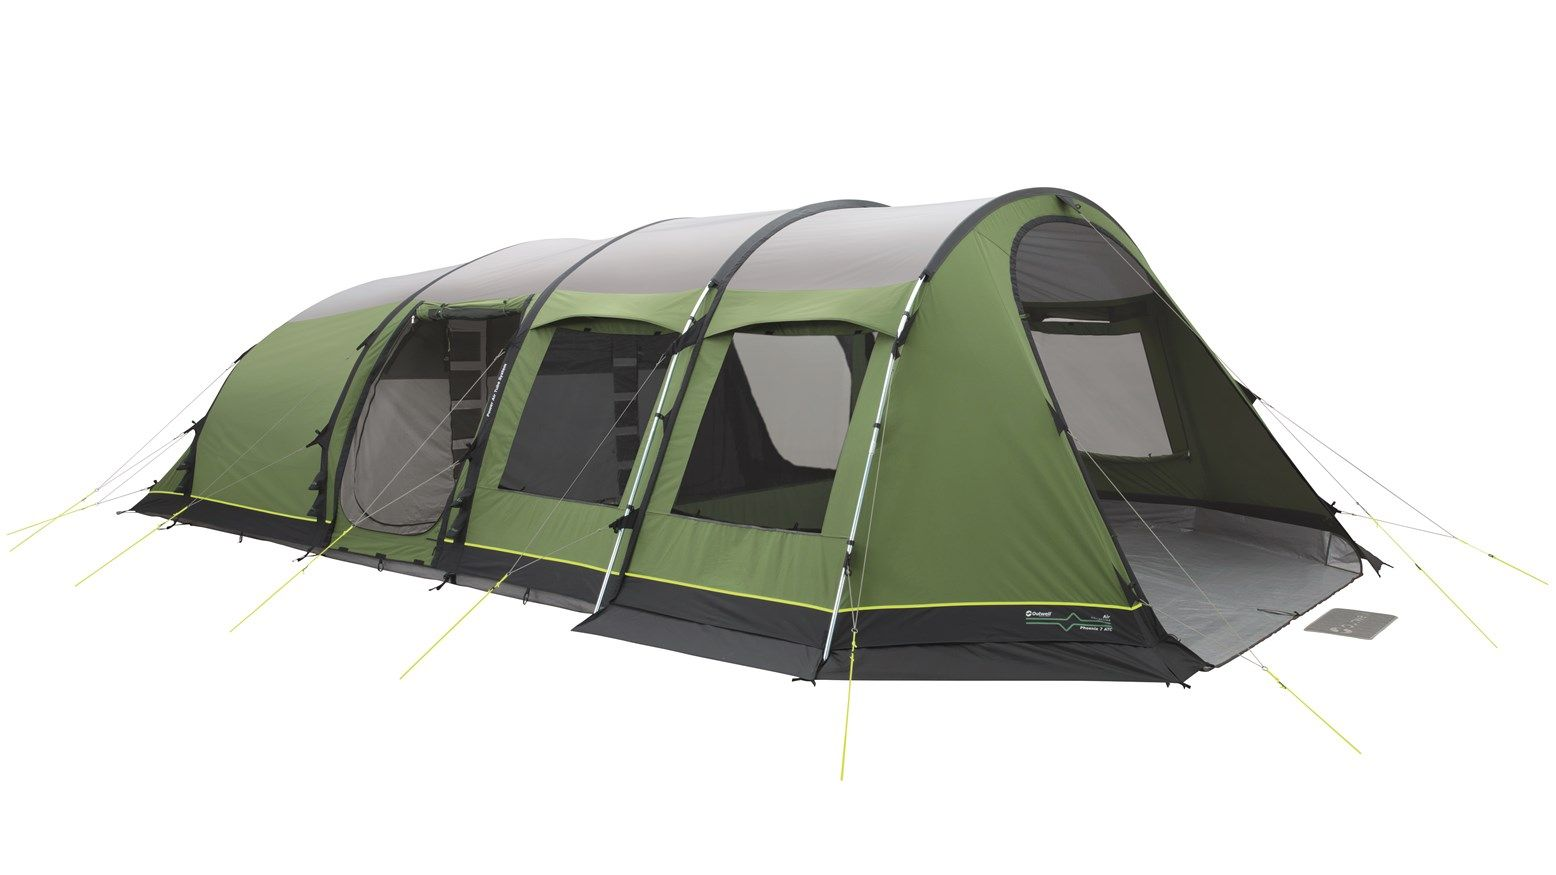 Outwell Phoenix 7ATC Air Tent 2017  sc 1 st  Pinterest & Outwell Phoenix 7ATC Air Tent 2017 | Outwell 2017 | Pinterest ...